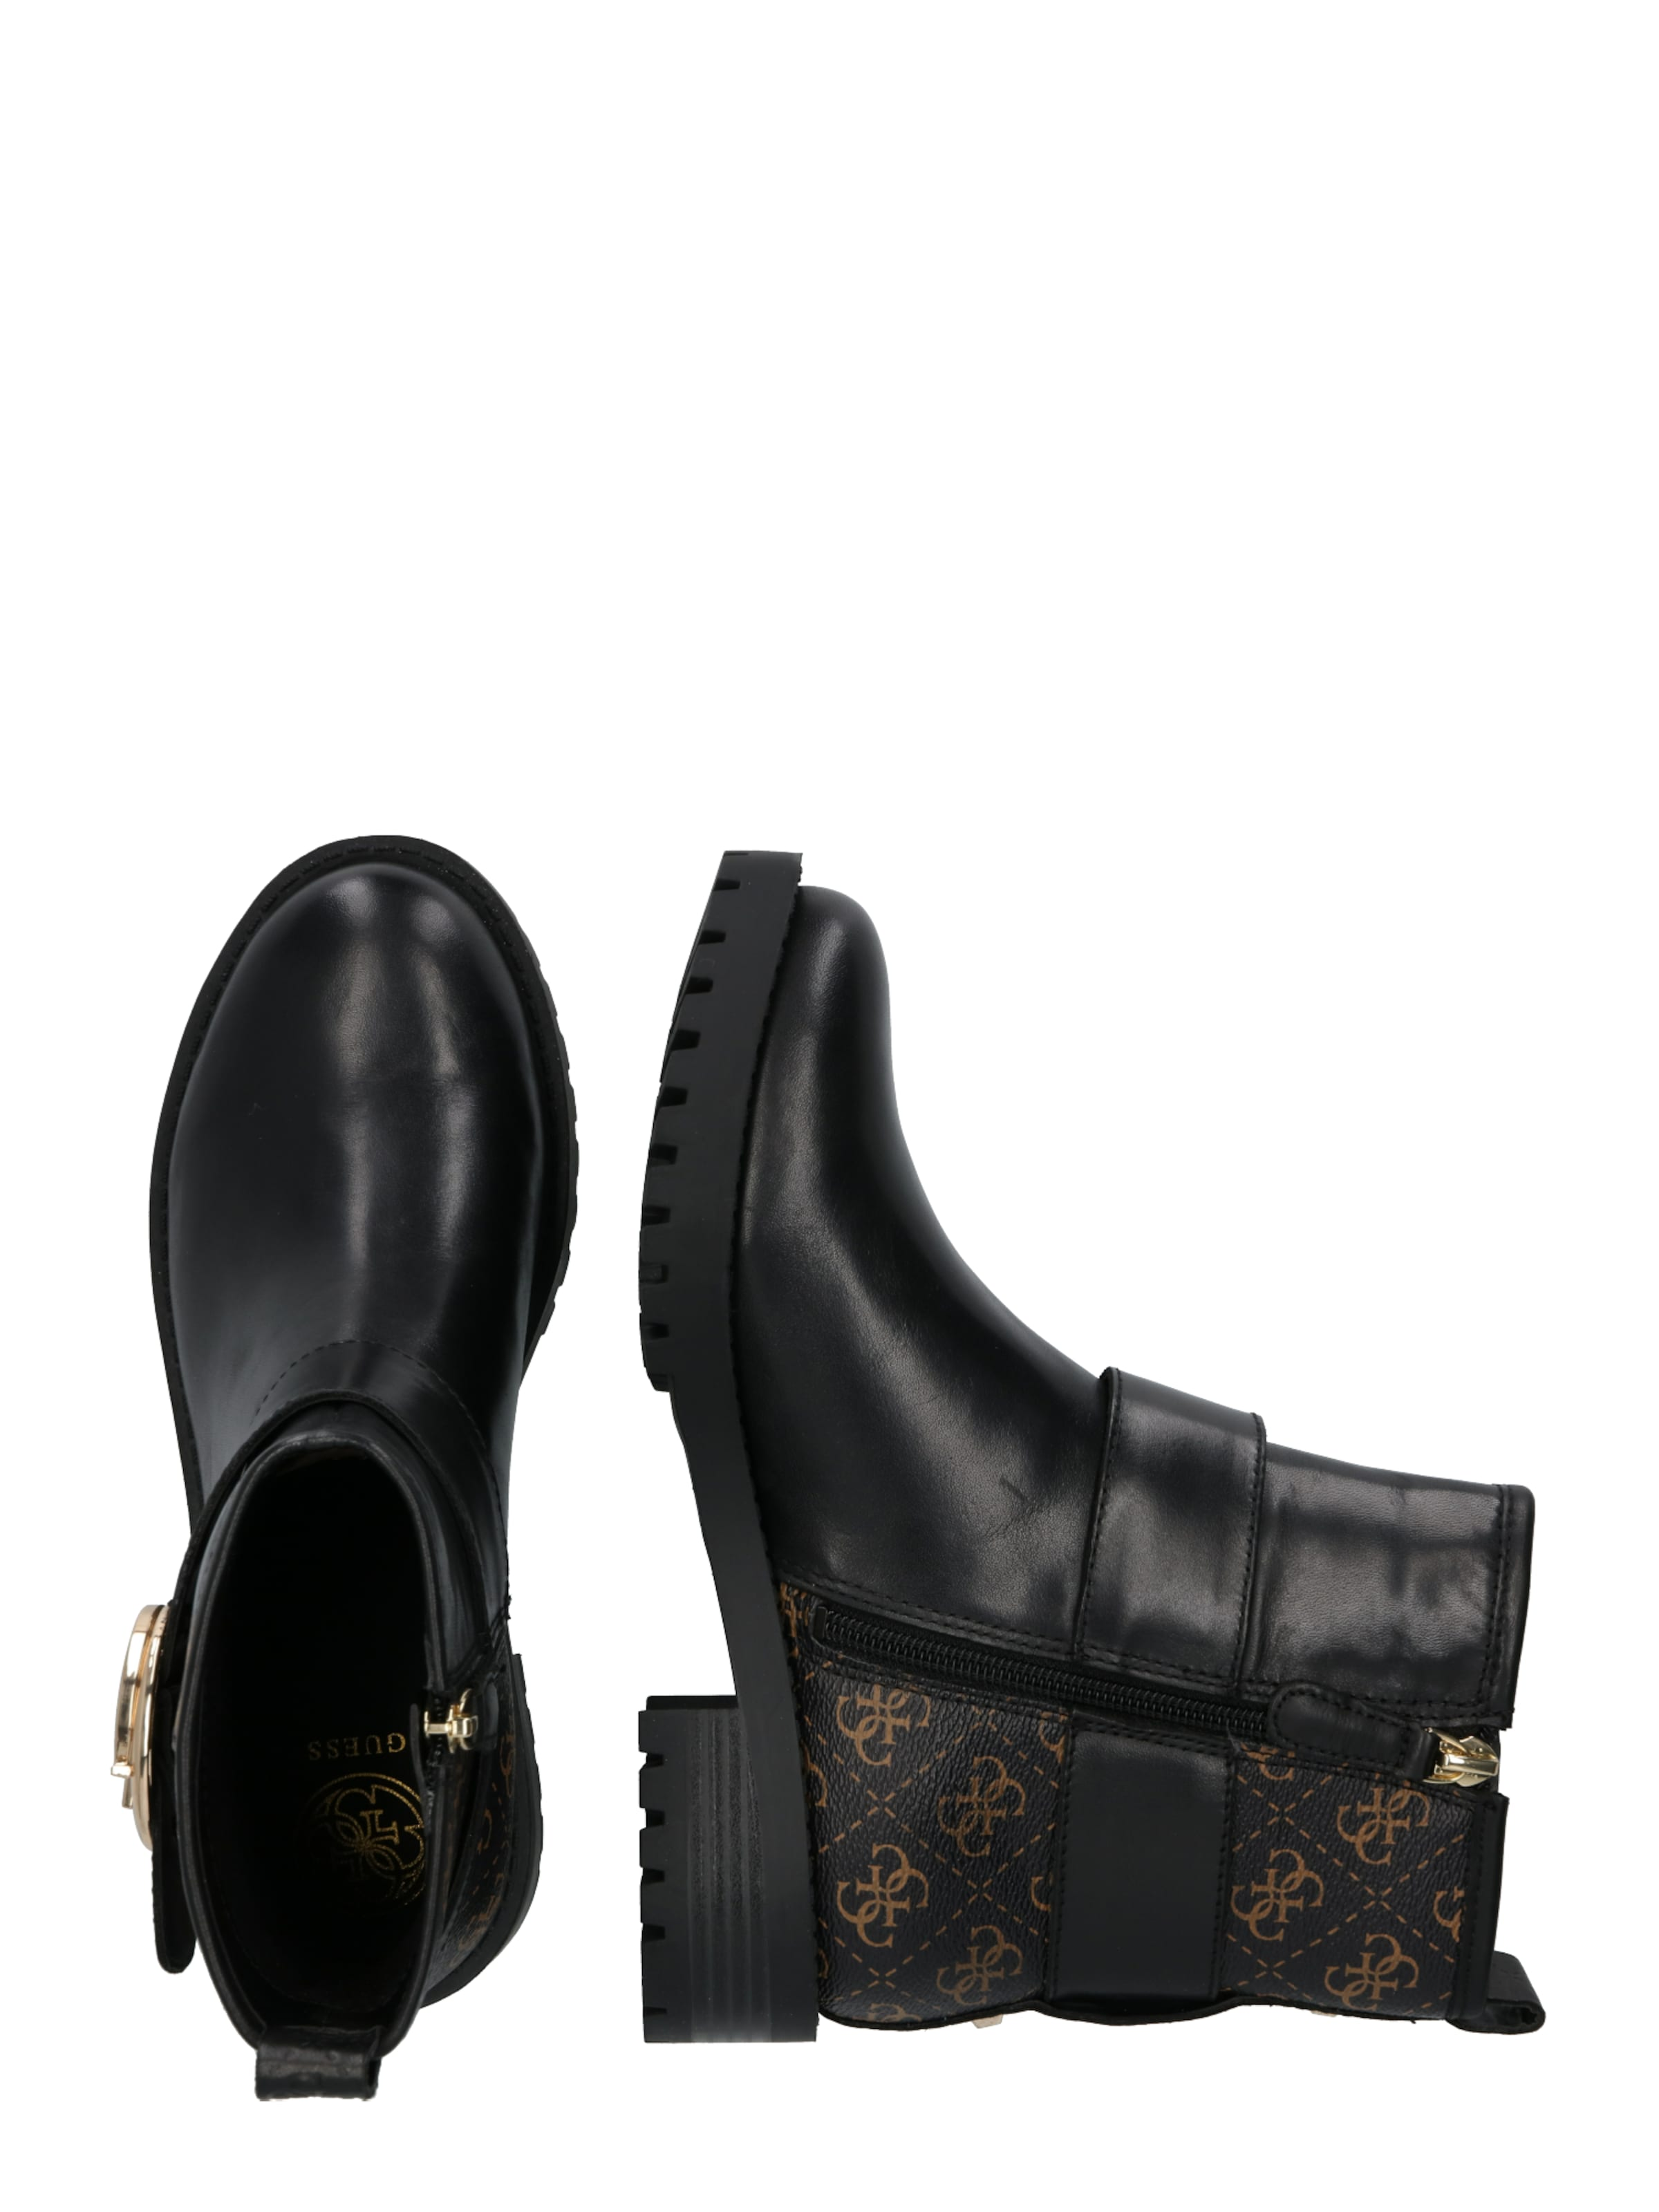 Bottines Guess Bottines MarronNoir 'hadasan' 'hadasan' En Guess lF1cJK